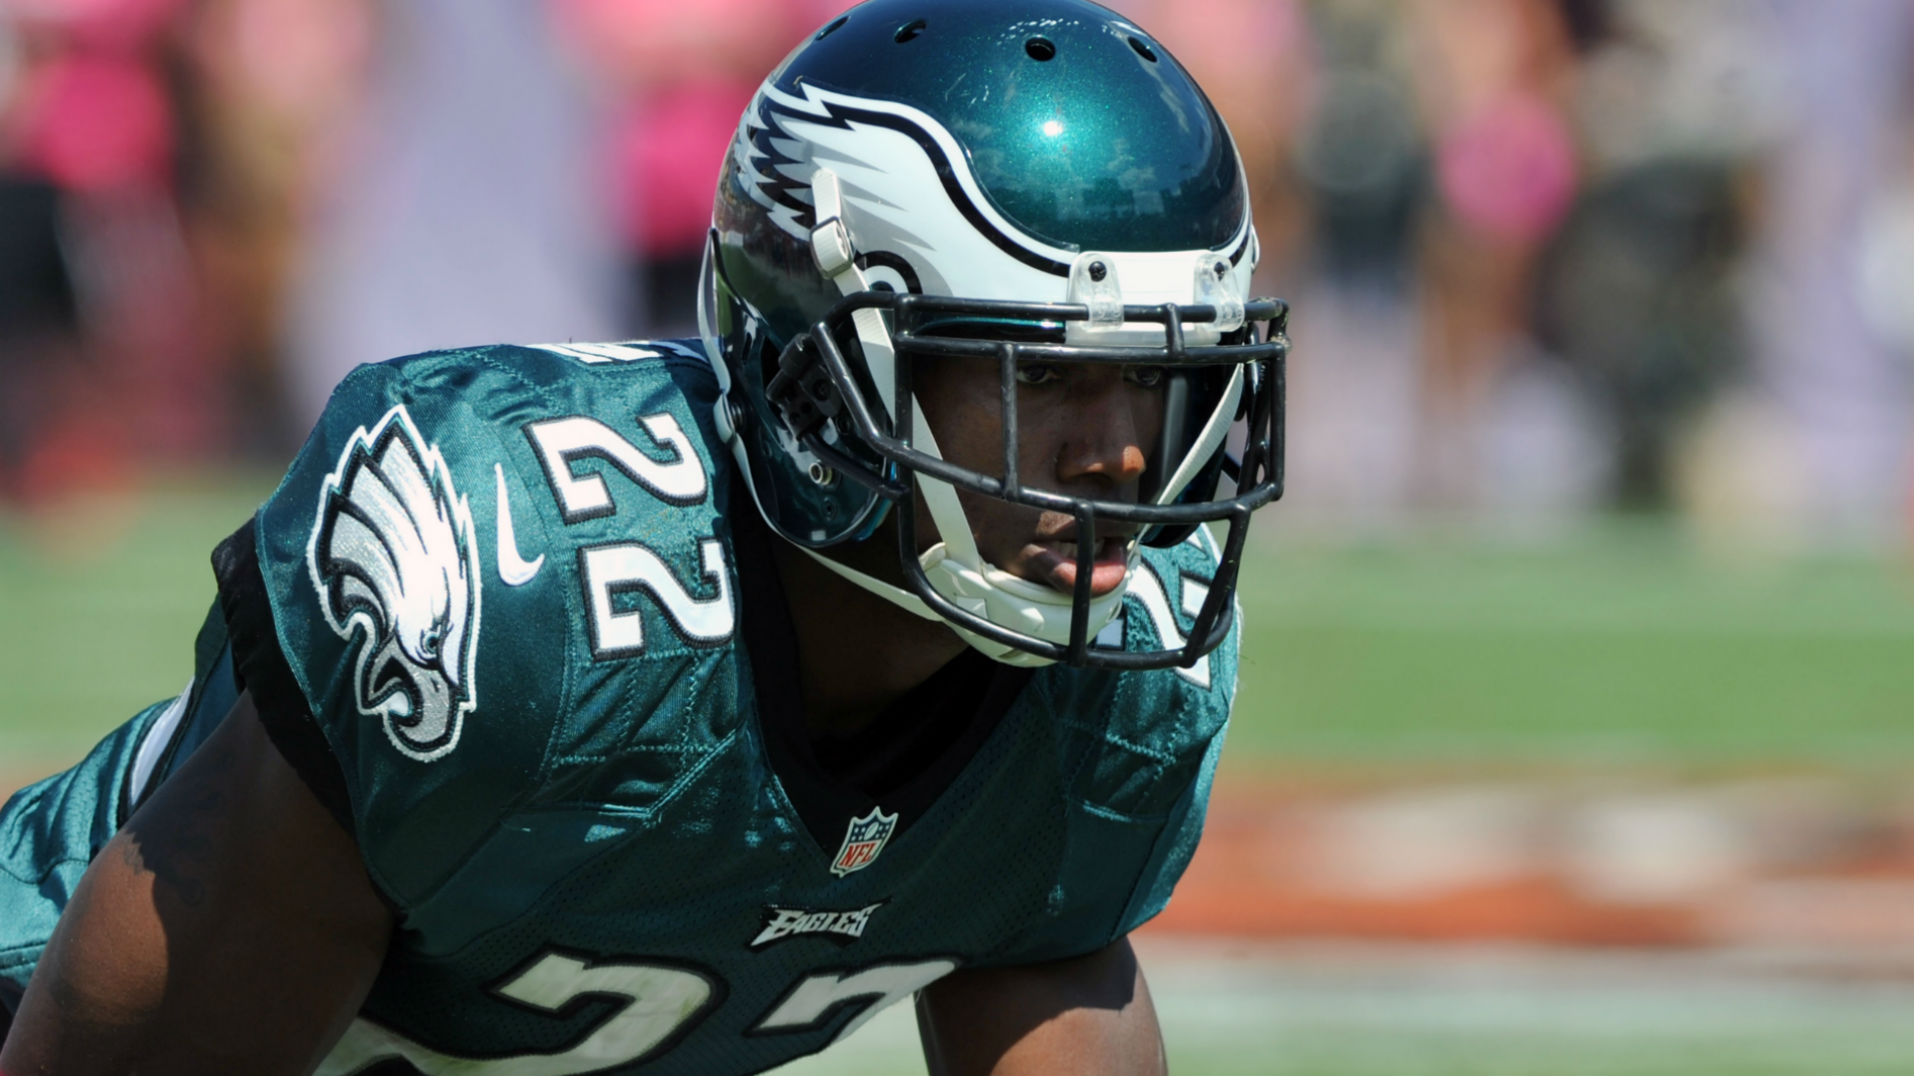 Eagles trade cornerback Brandon Boykin to Steelers